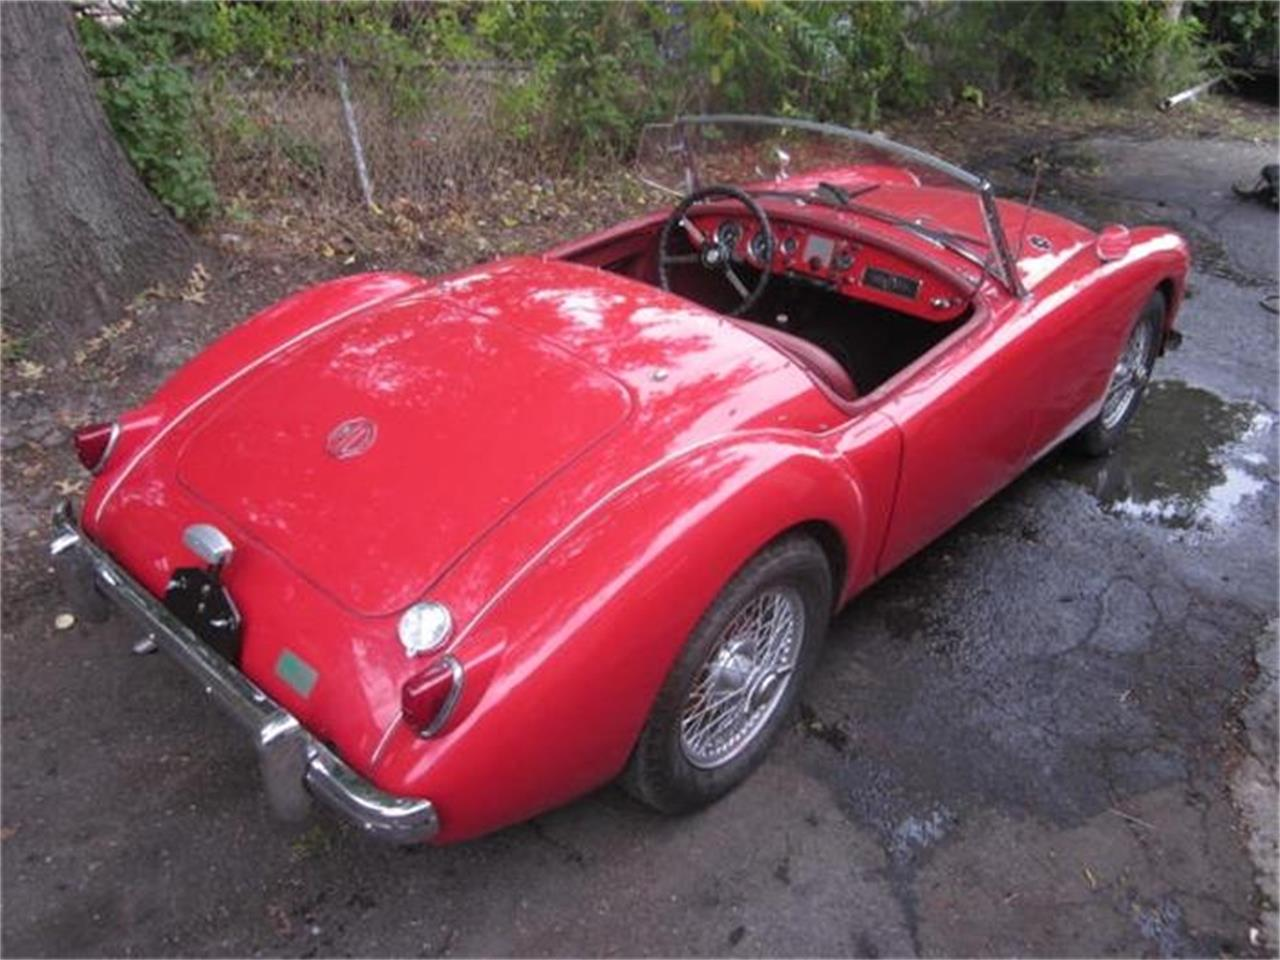 Large Picture of Classic 1959 MGA 1500 located in Stratford Connecticut - $24,000.00 Offered by The New England Classic Car Co. - EYVI